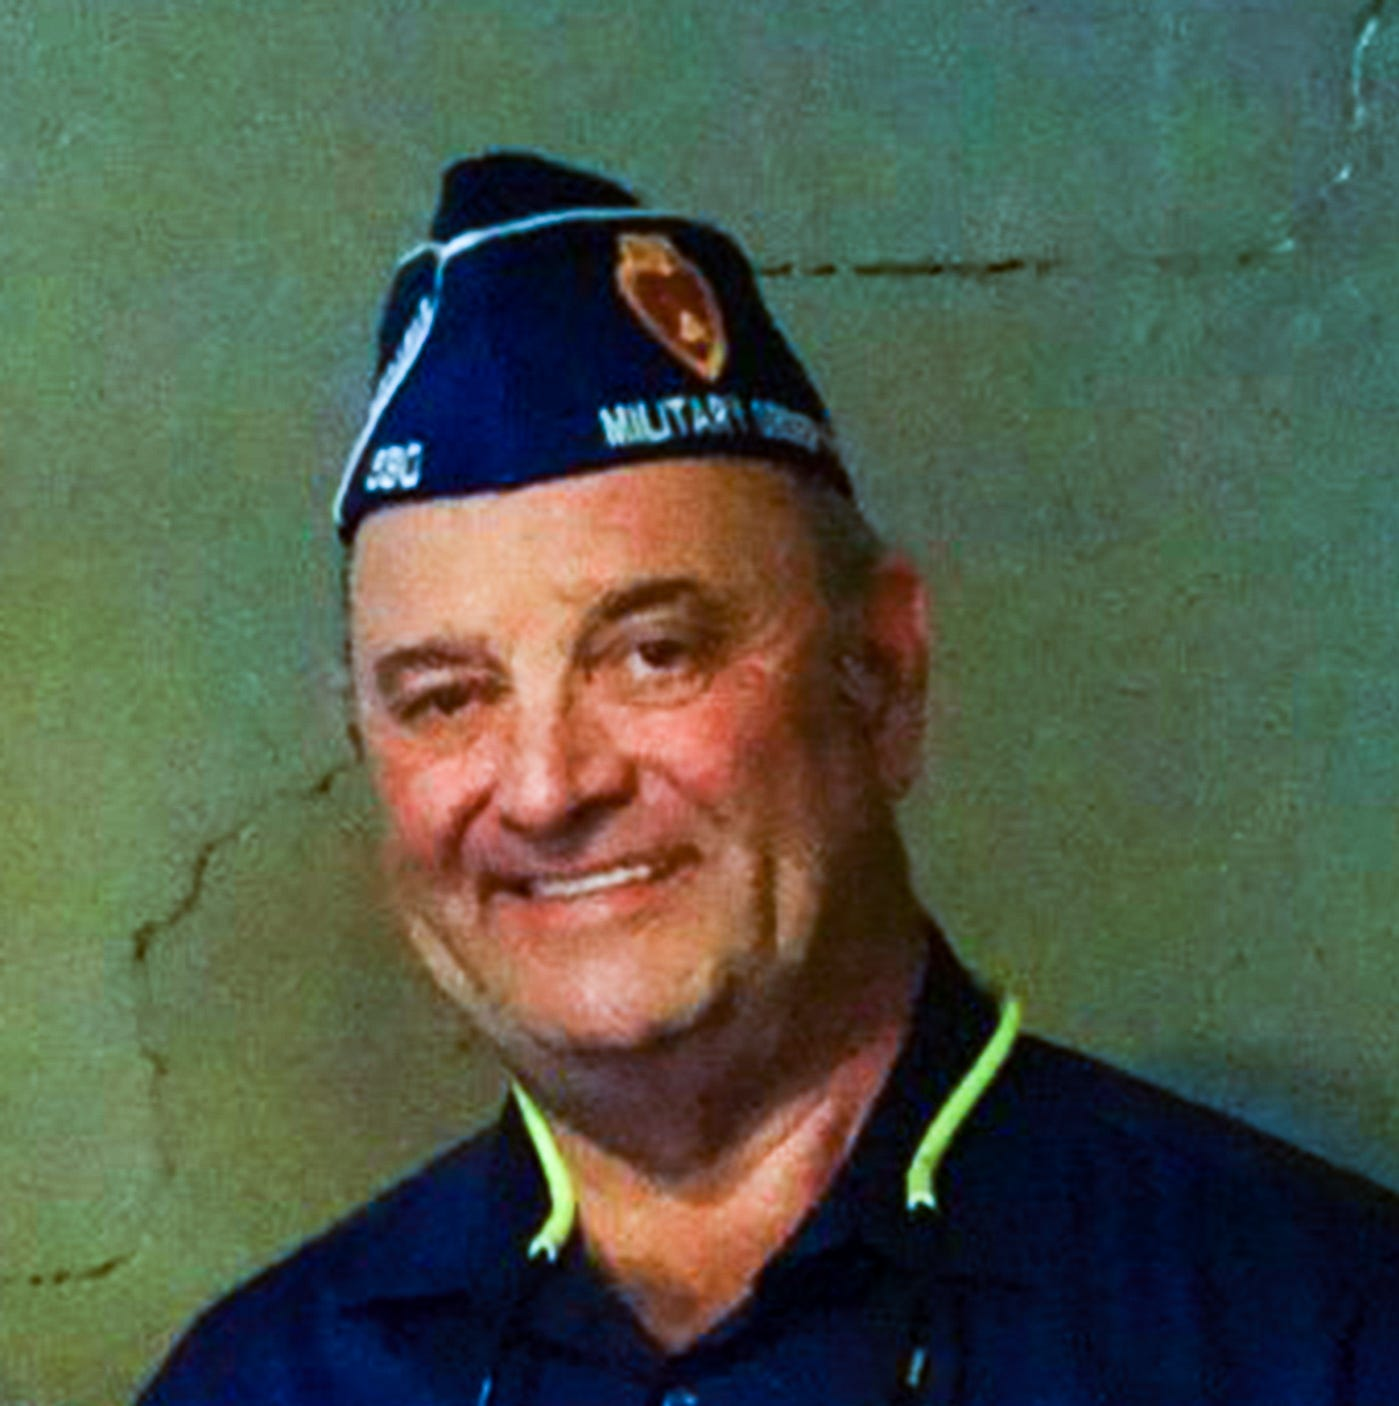 Woman's sexual harassment suit against Anderson County veterans leader settled for $55,000